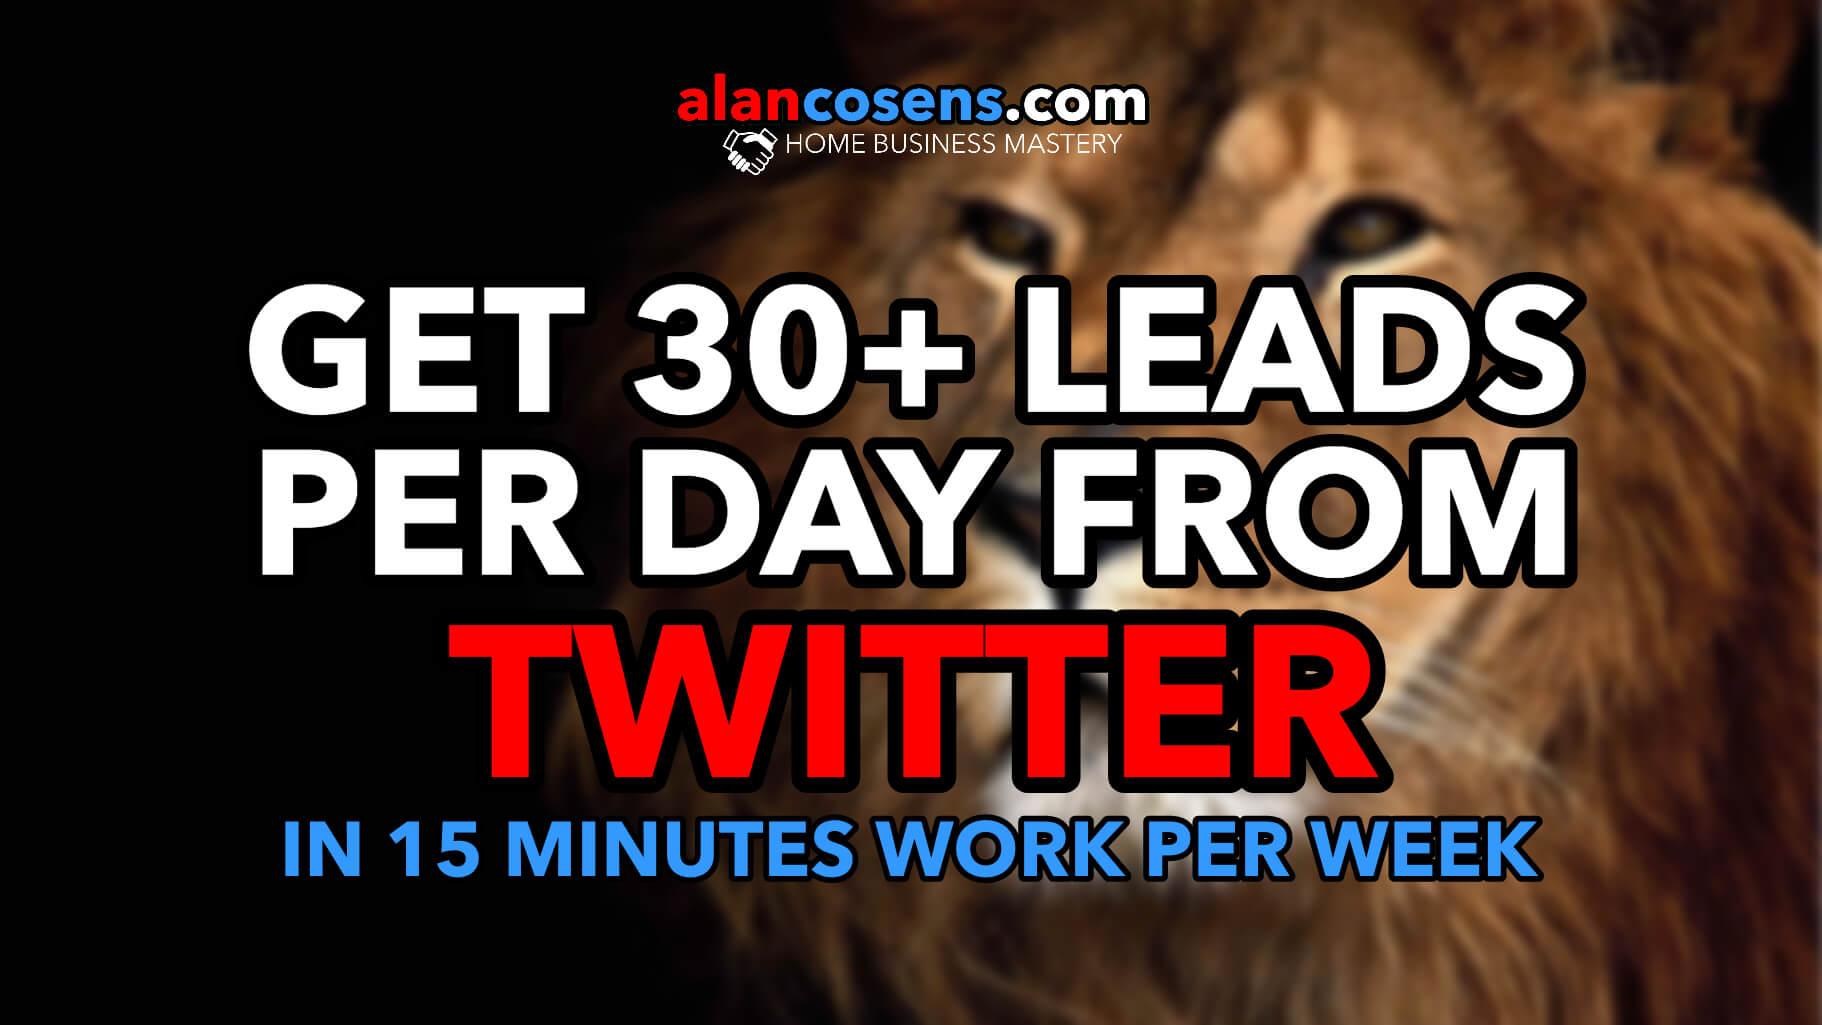 30 Leads Per Day From Twitter